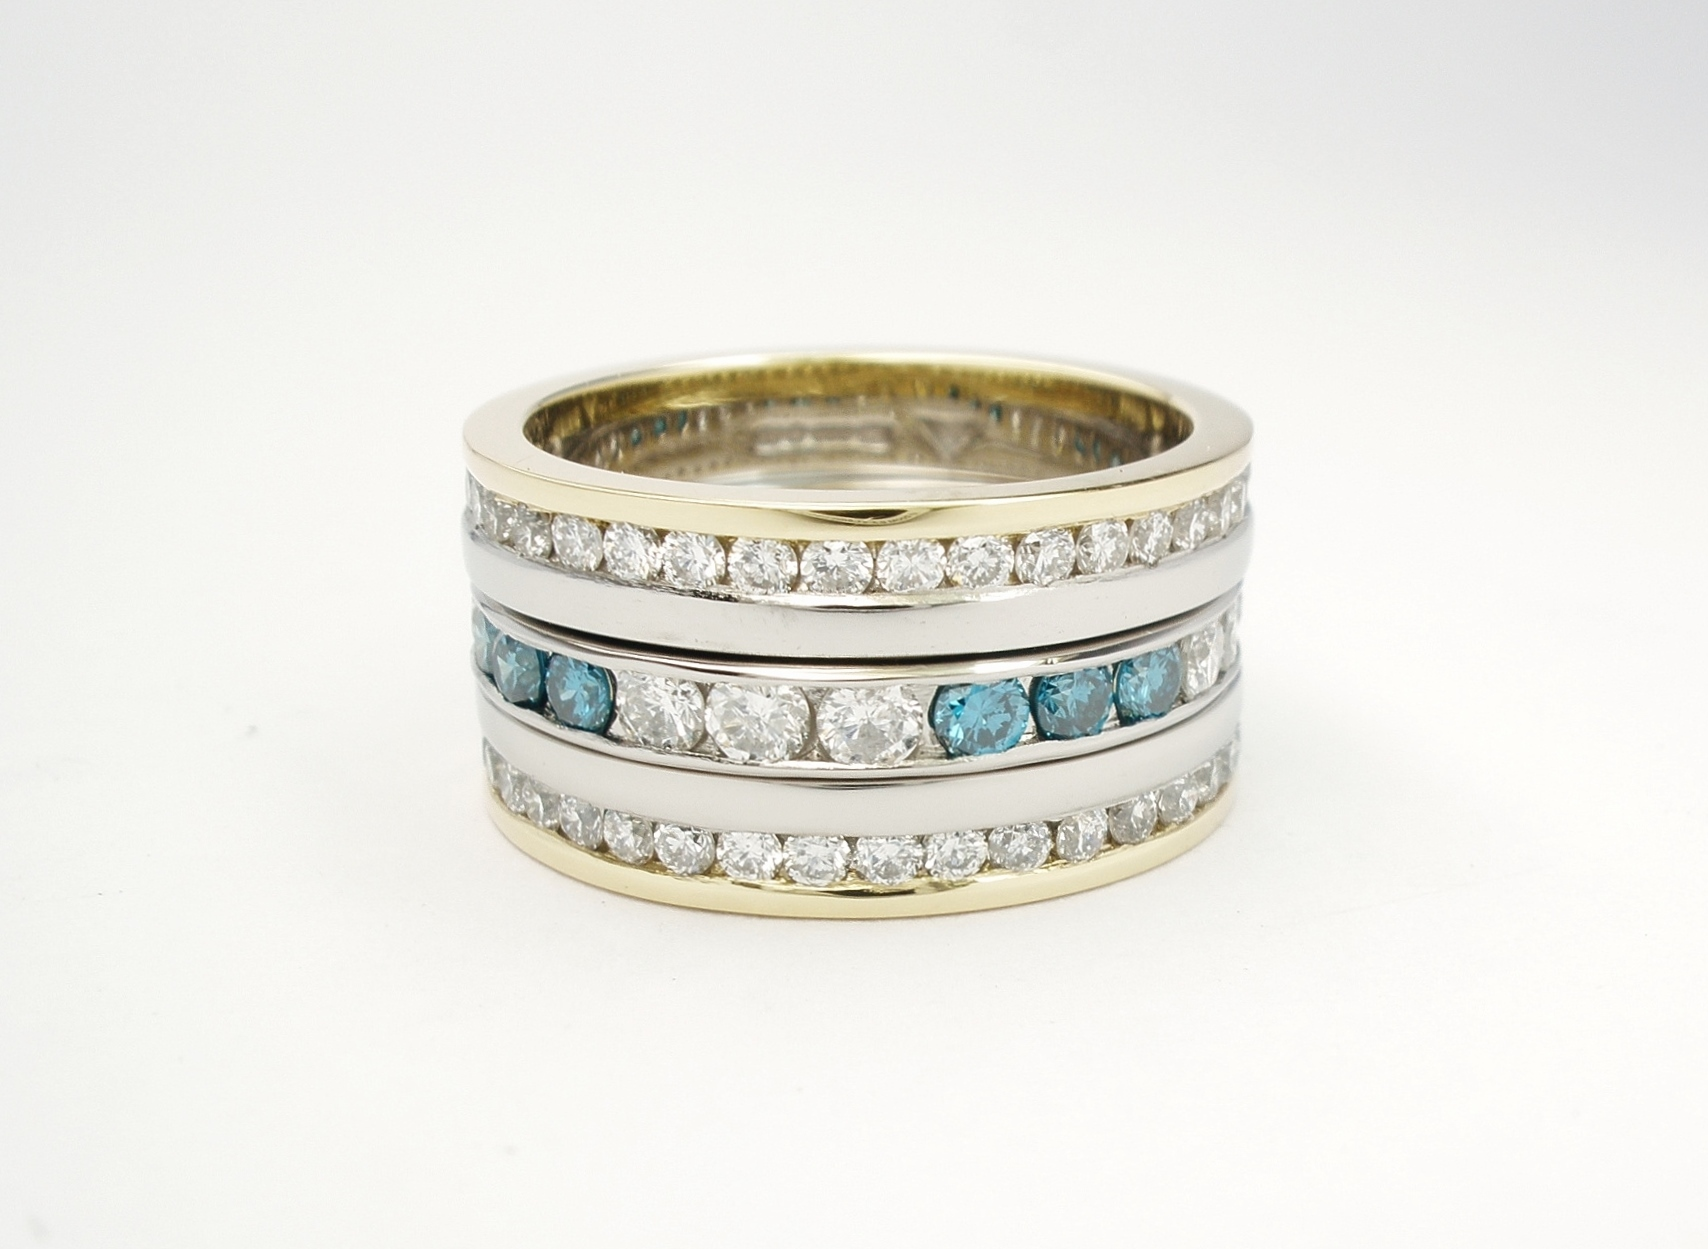 Triple stacking half eternity style white and blue diamond rings mounted in platinum & 18ct. yellow gold.